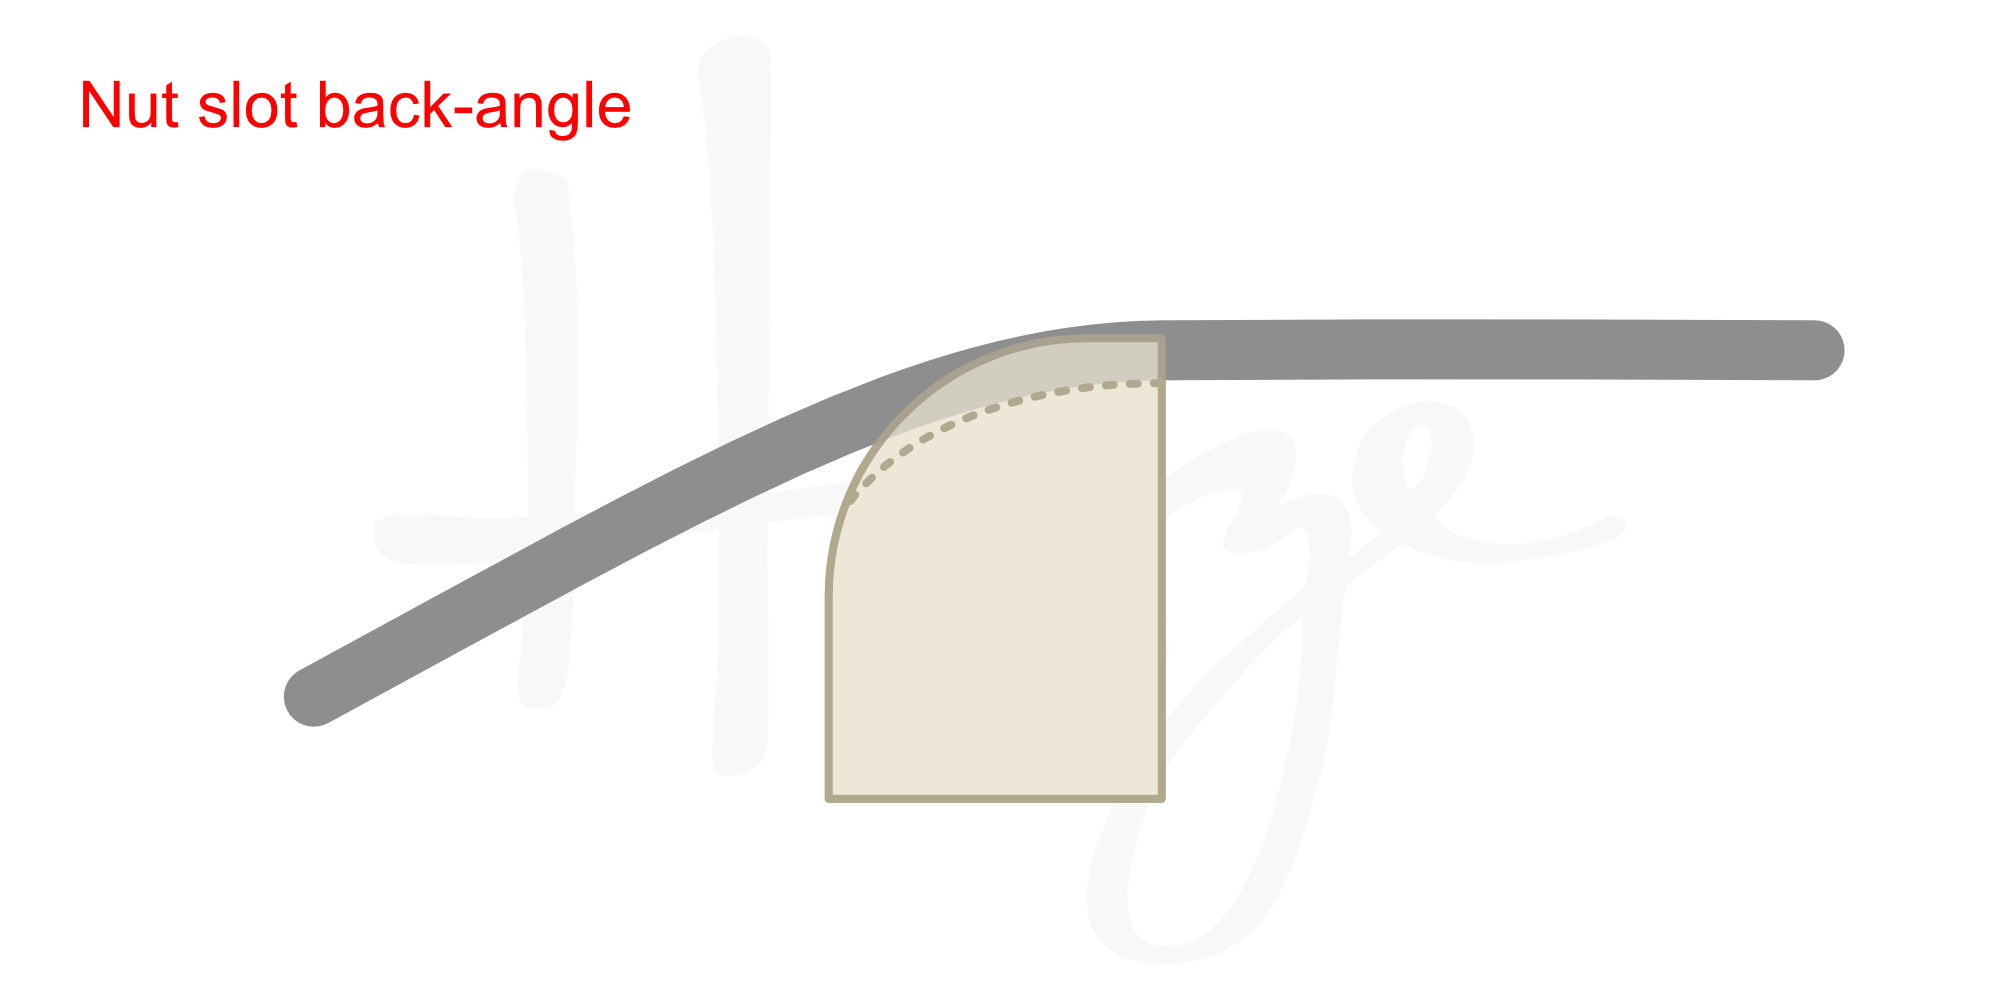 The bottom of the slot should slope away gradually so the string's well supported.